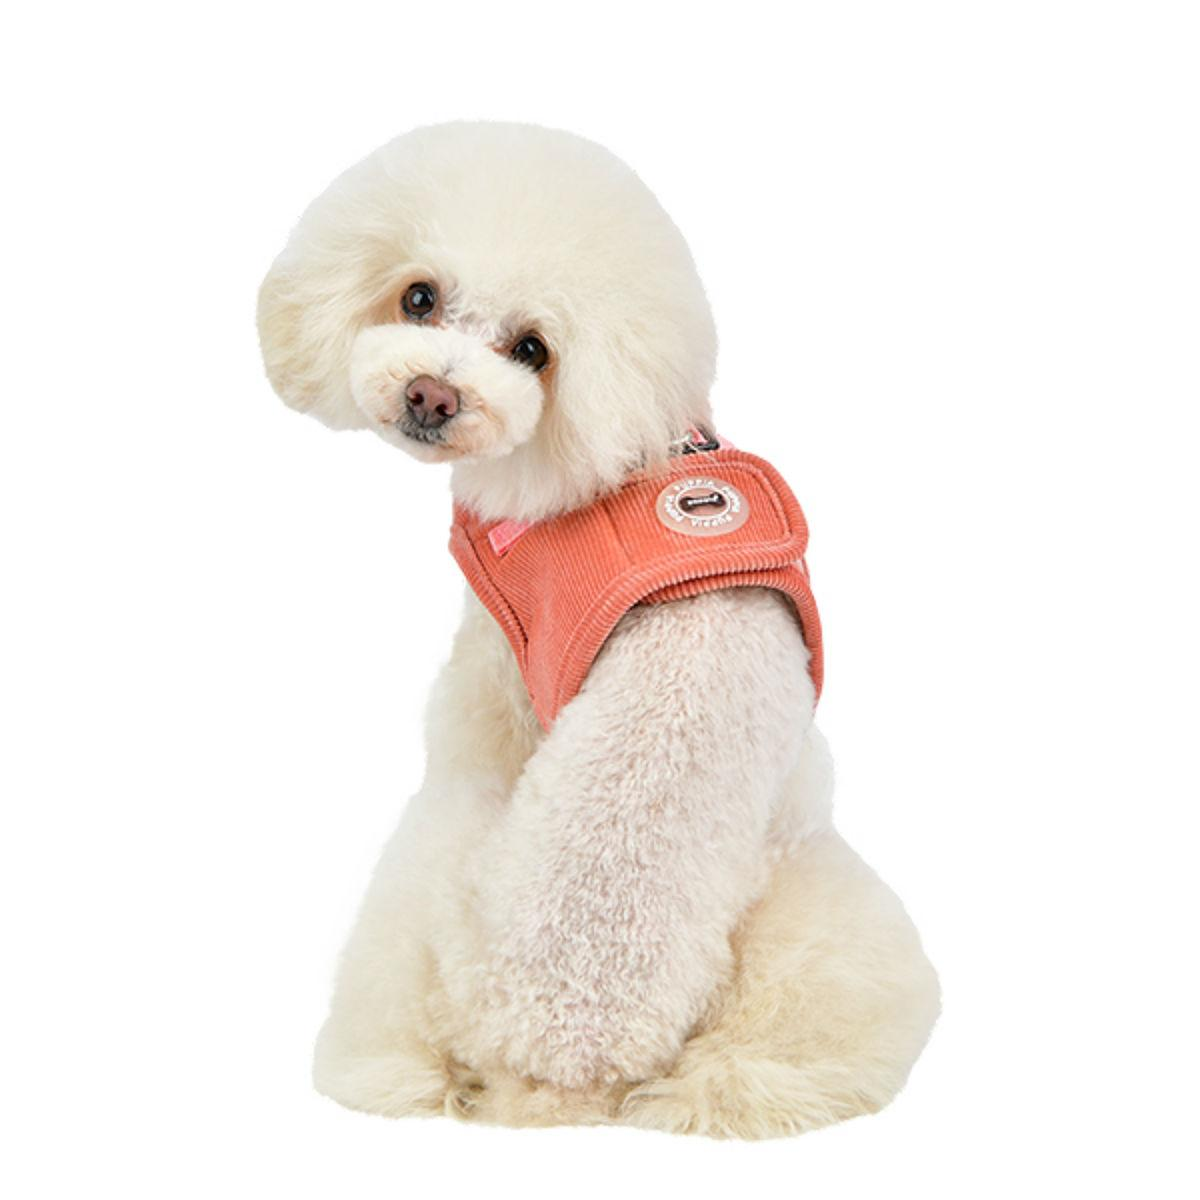 Classy Vest Style Dog Harness By Puppia - Peach